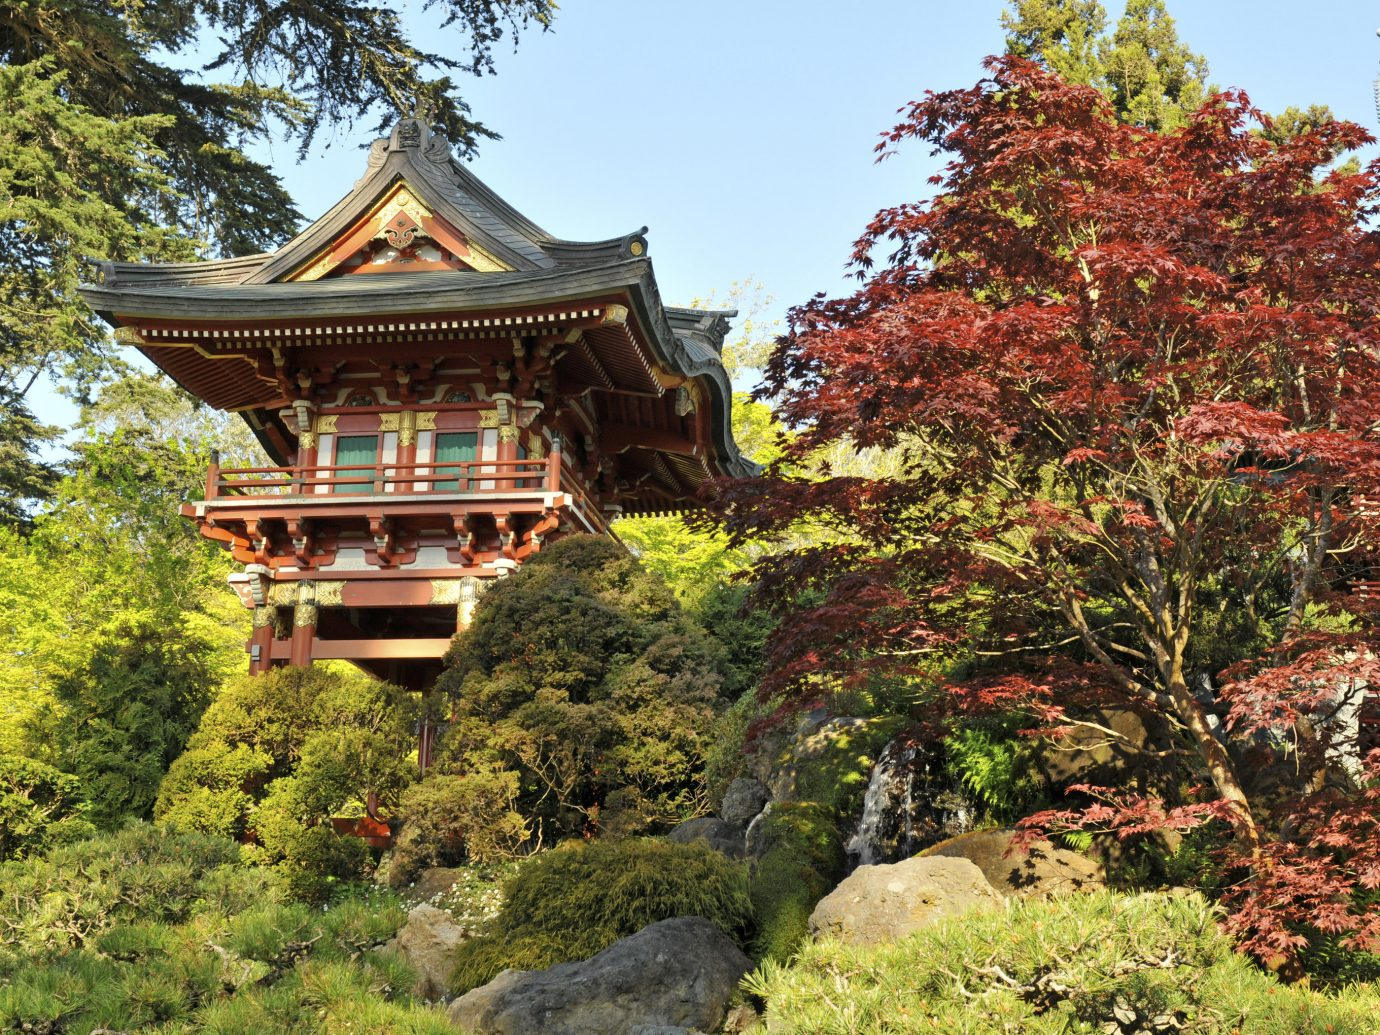 Beauty Health + Wellness Japan Kyoto San Francisco Travel Tips chinese architecture Nature leaf tree plant autumn Garden pagoda botanical garden tourist attraction house landscape shinto shrine temple outdoor structure estate shrub landscaping grass